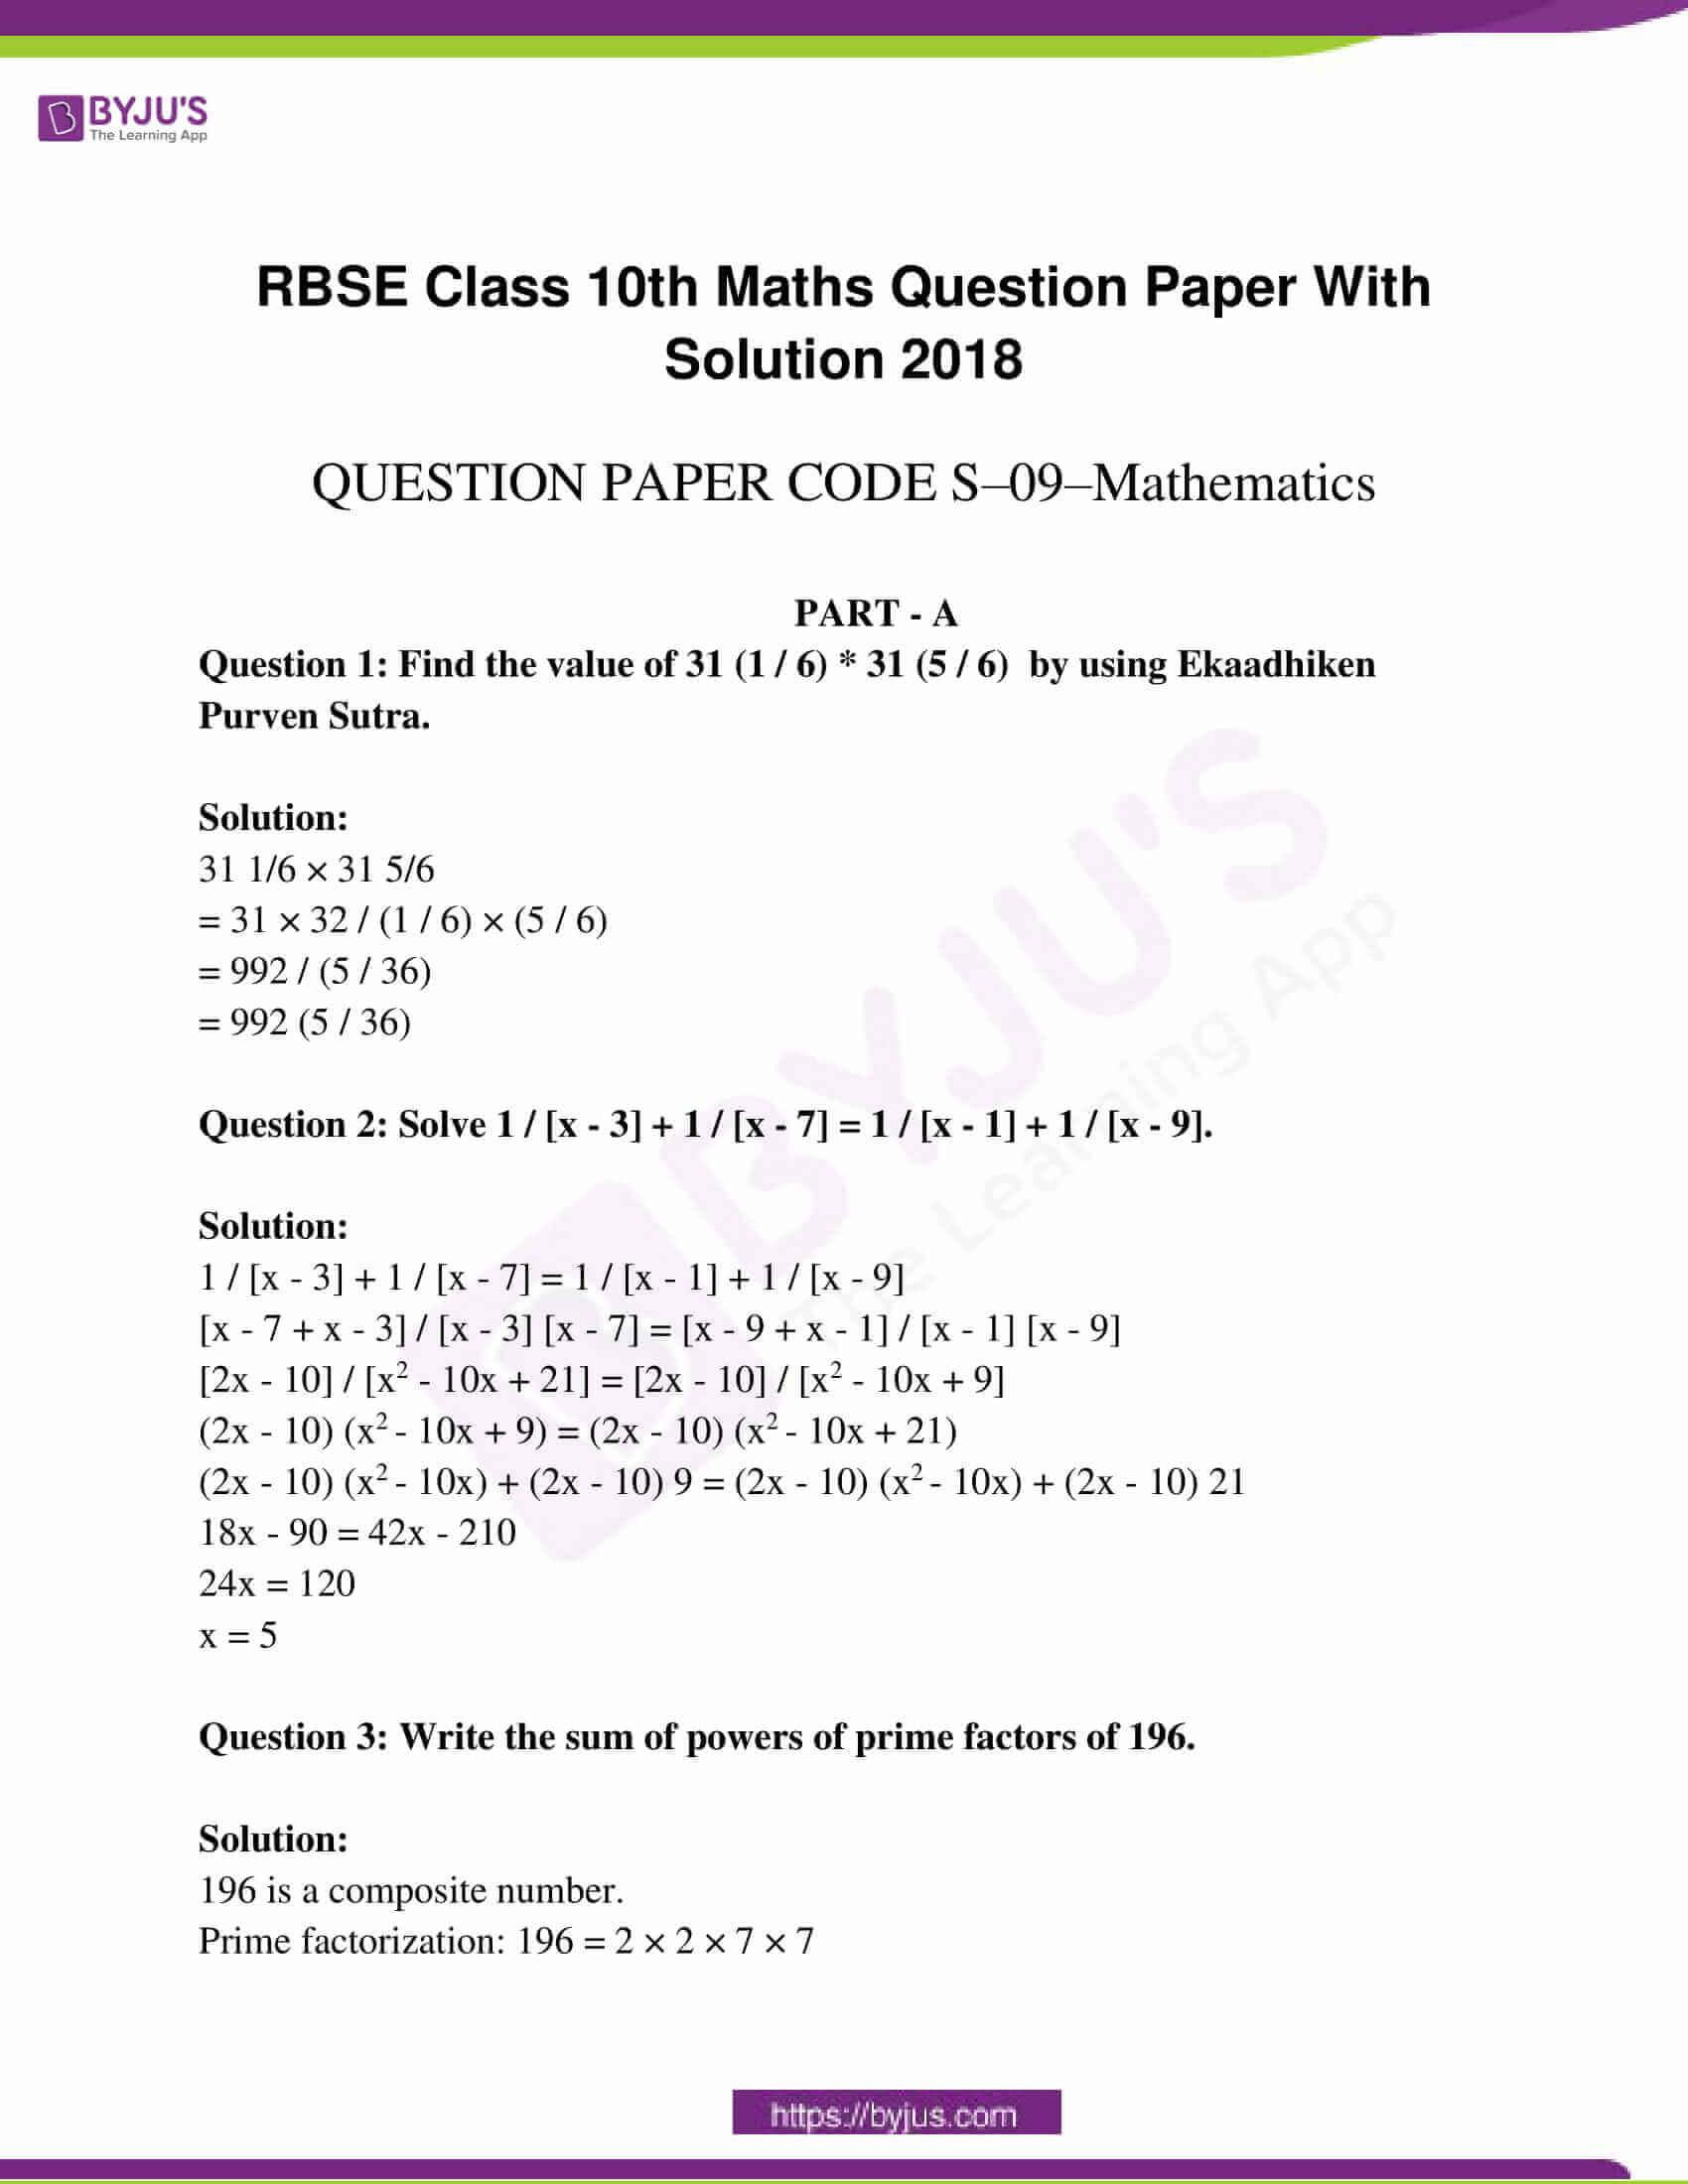 rajasthan board class 10 examination question paper sol march 2018 01